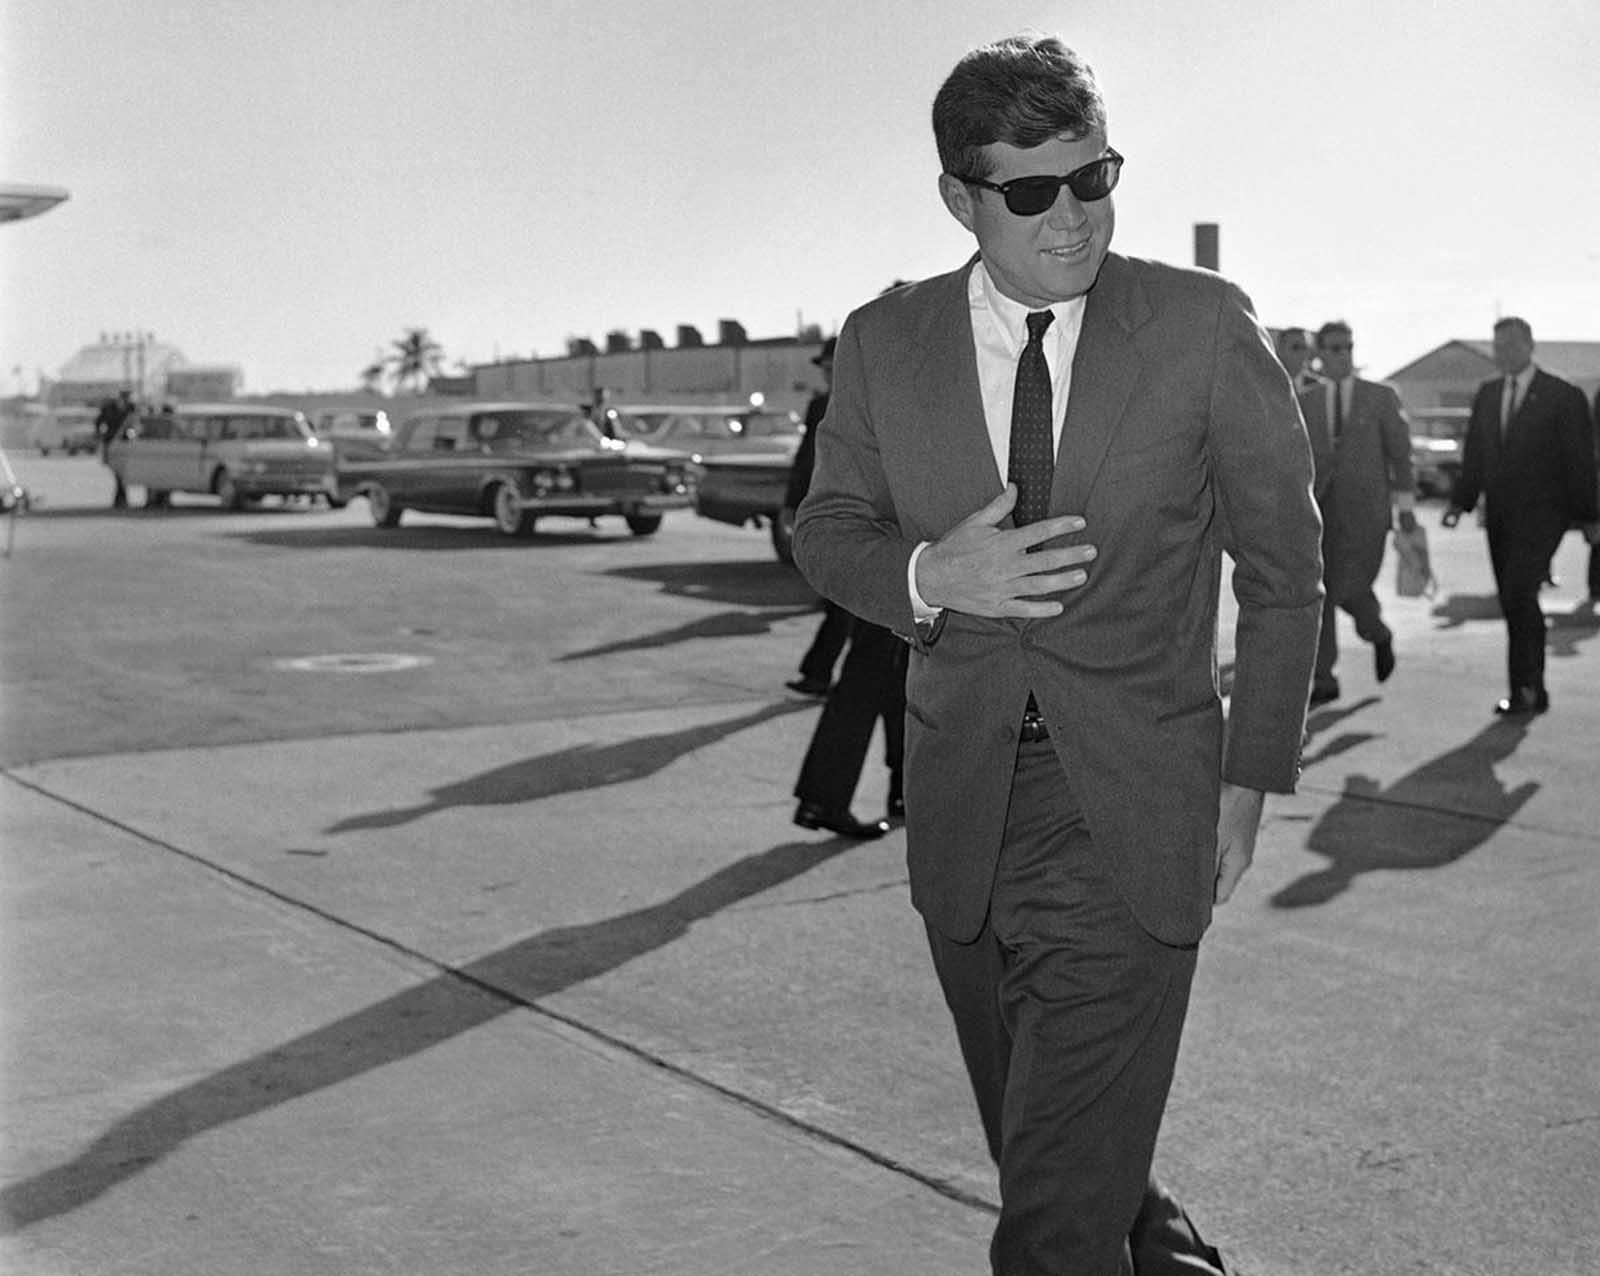 President John F. Kennedy heads for Washington after an overnight stopover on December 18, 1961 in West Palm Beach, Florida where he rested after his Latin American tour due to a heavy cold.